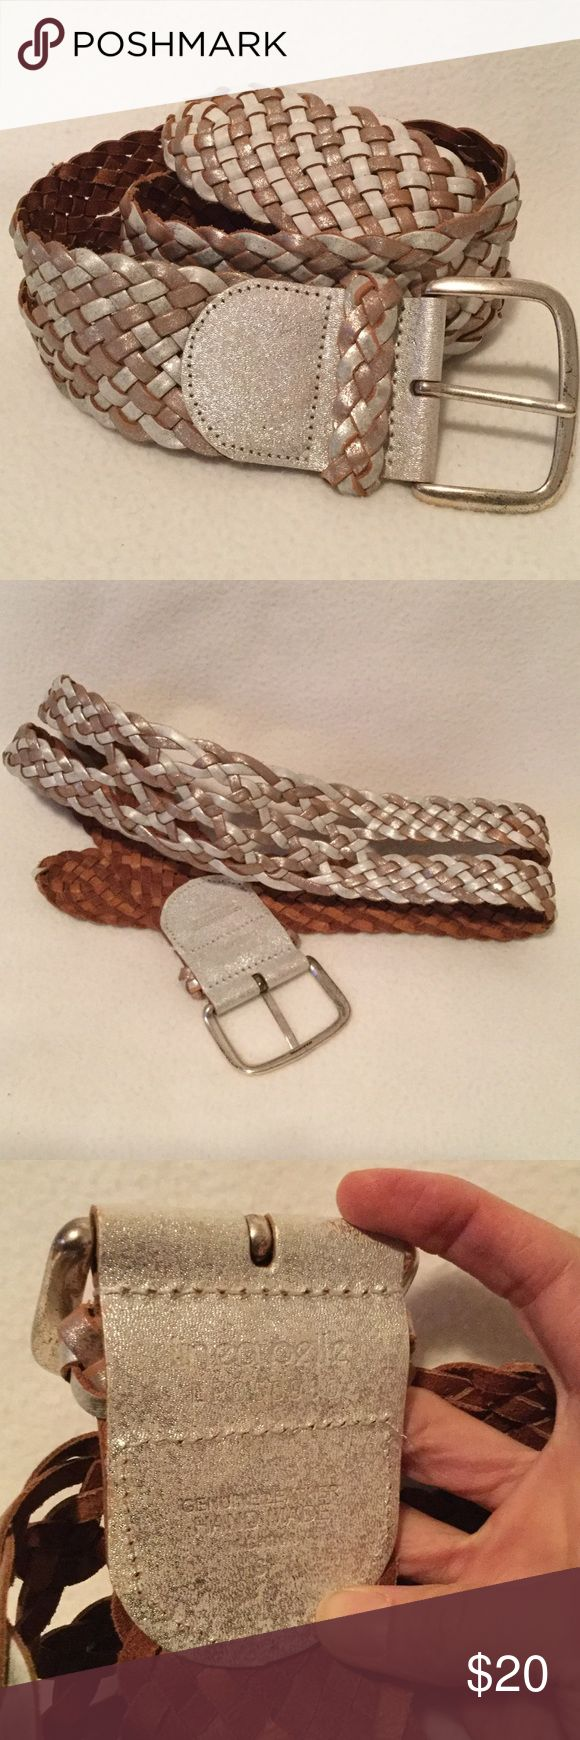 Silver and tan leather belt. Linea Pelle, hand made, Shimmering silver and tan leather woven belt. Very good condition. Linea Pelle Accessories Belts